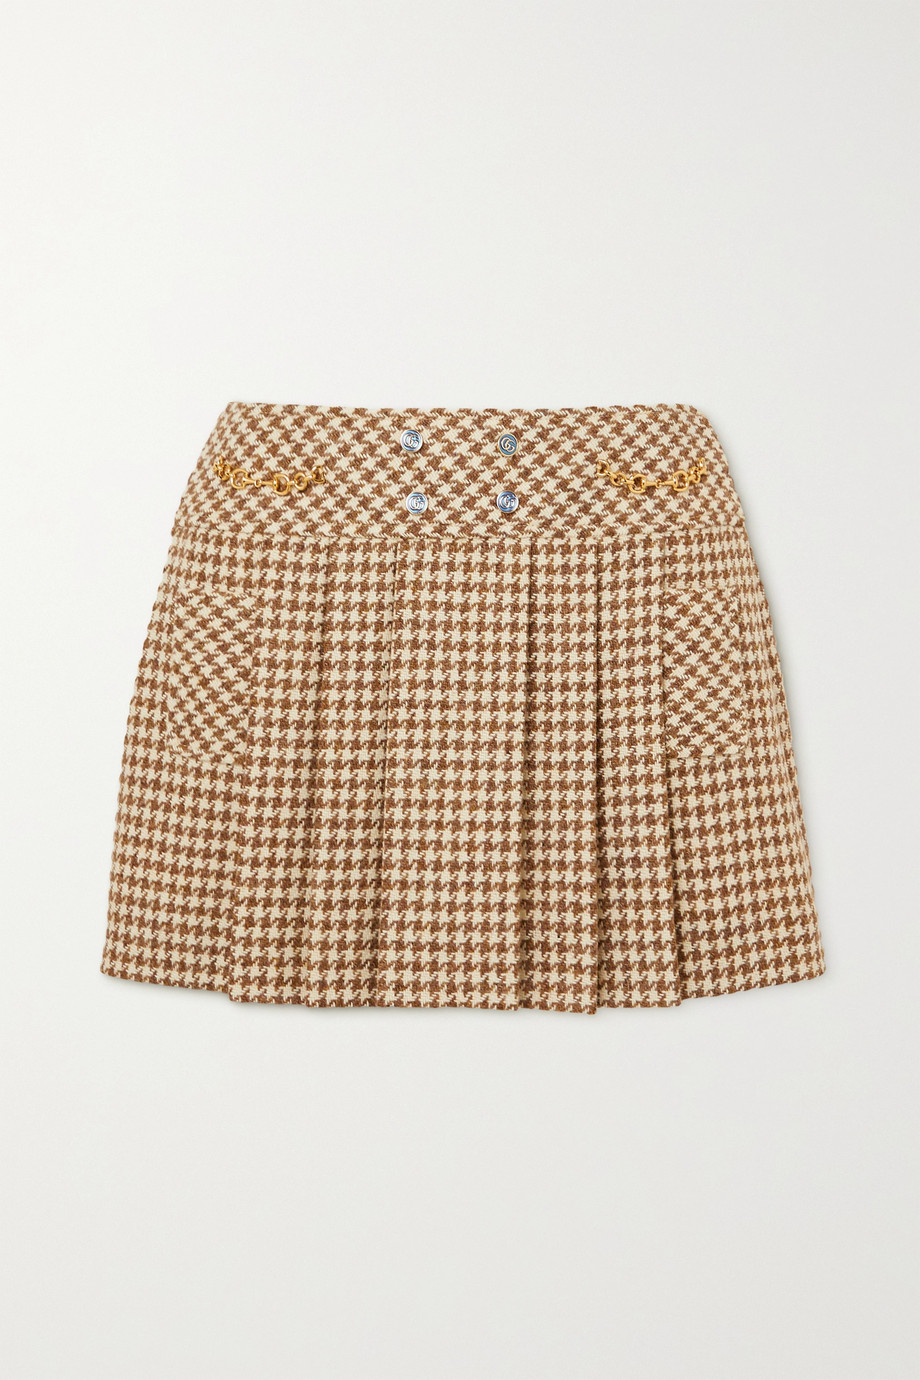 Gucci Embellished pleated houndstooth wool and mohair-blend mini skirt